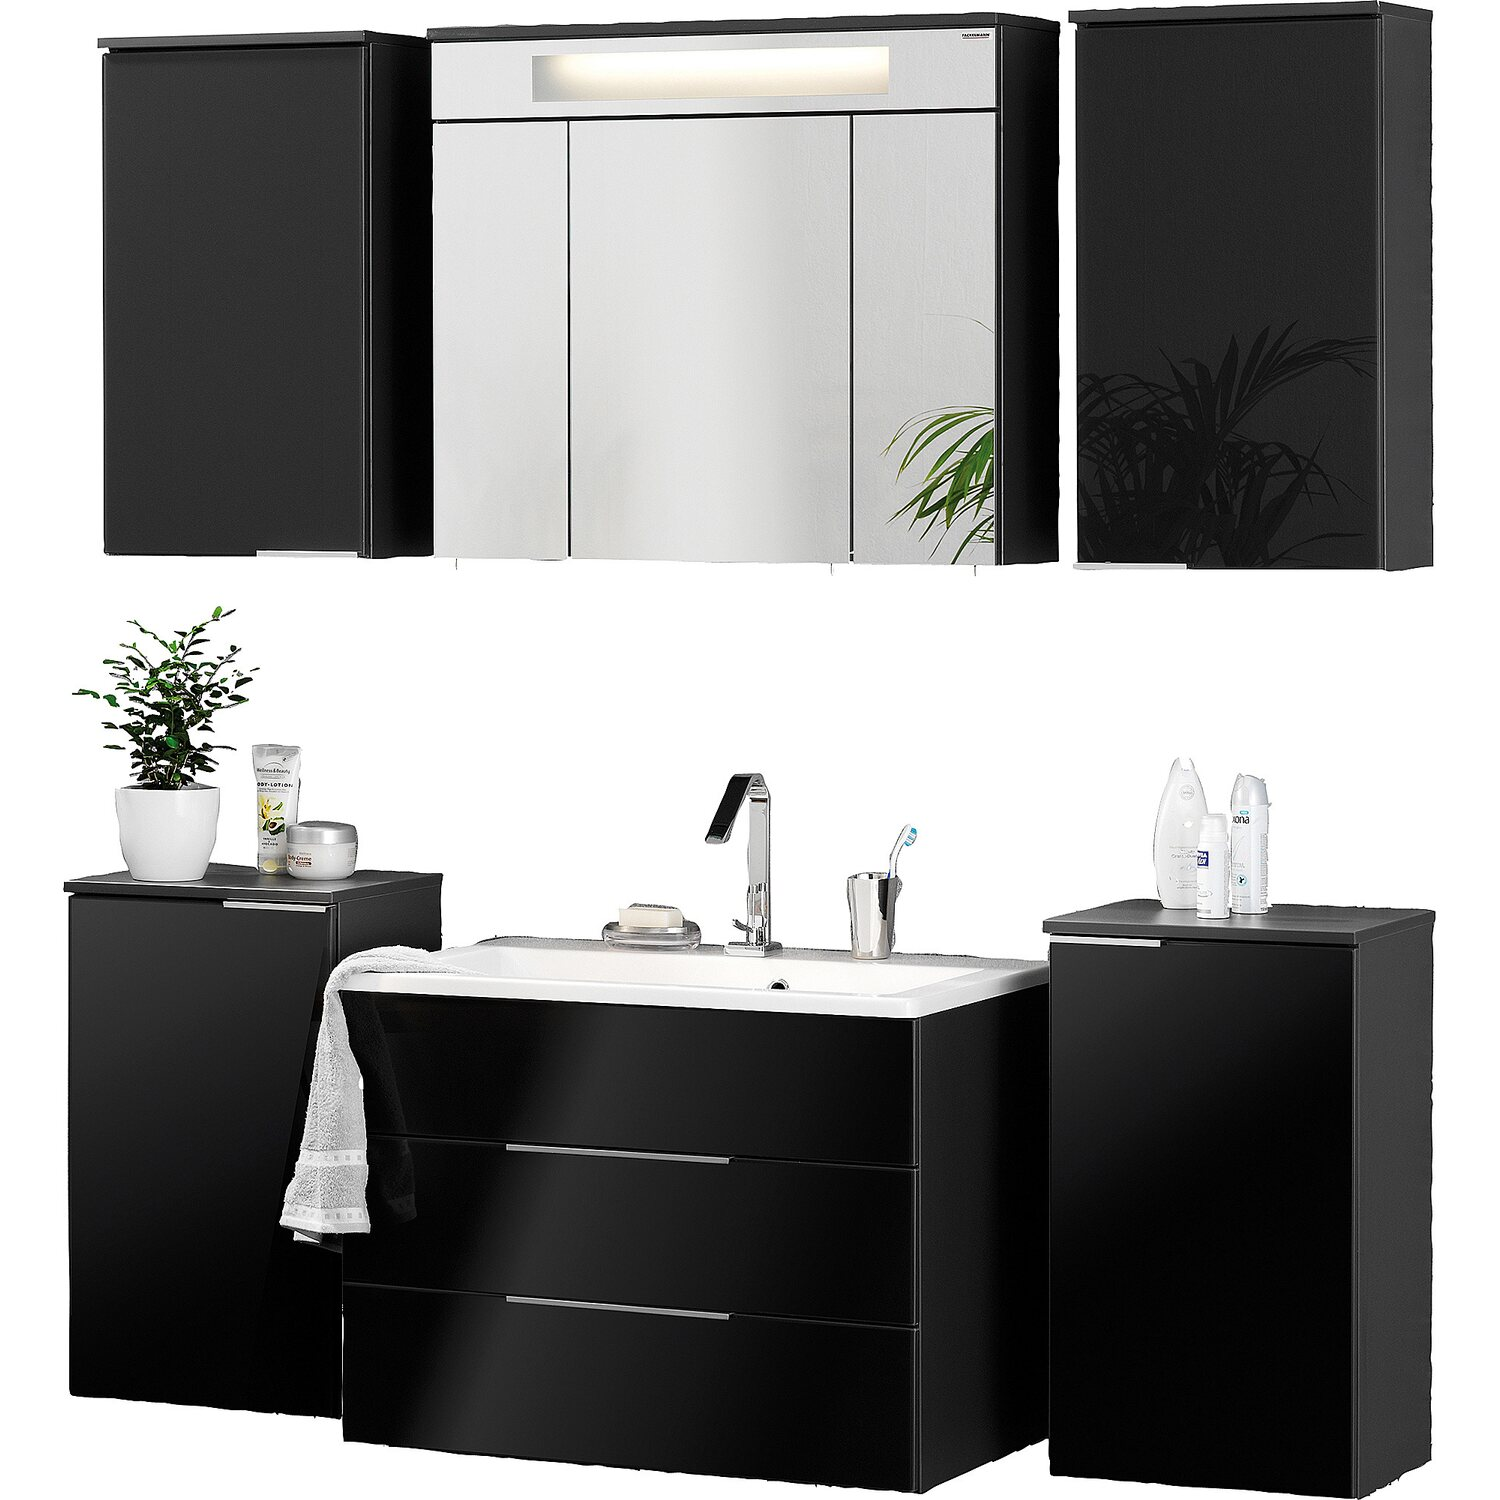 fackelmann badm bel set eek a kara anthrazit 7 teilig kaufen bei obi. Black Bedroom Furniture Sets. Home Design Ideas